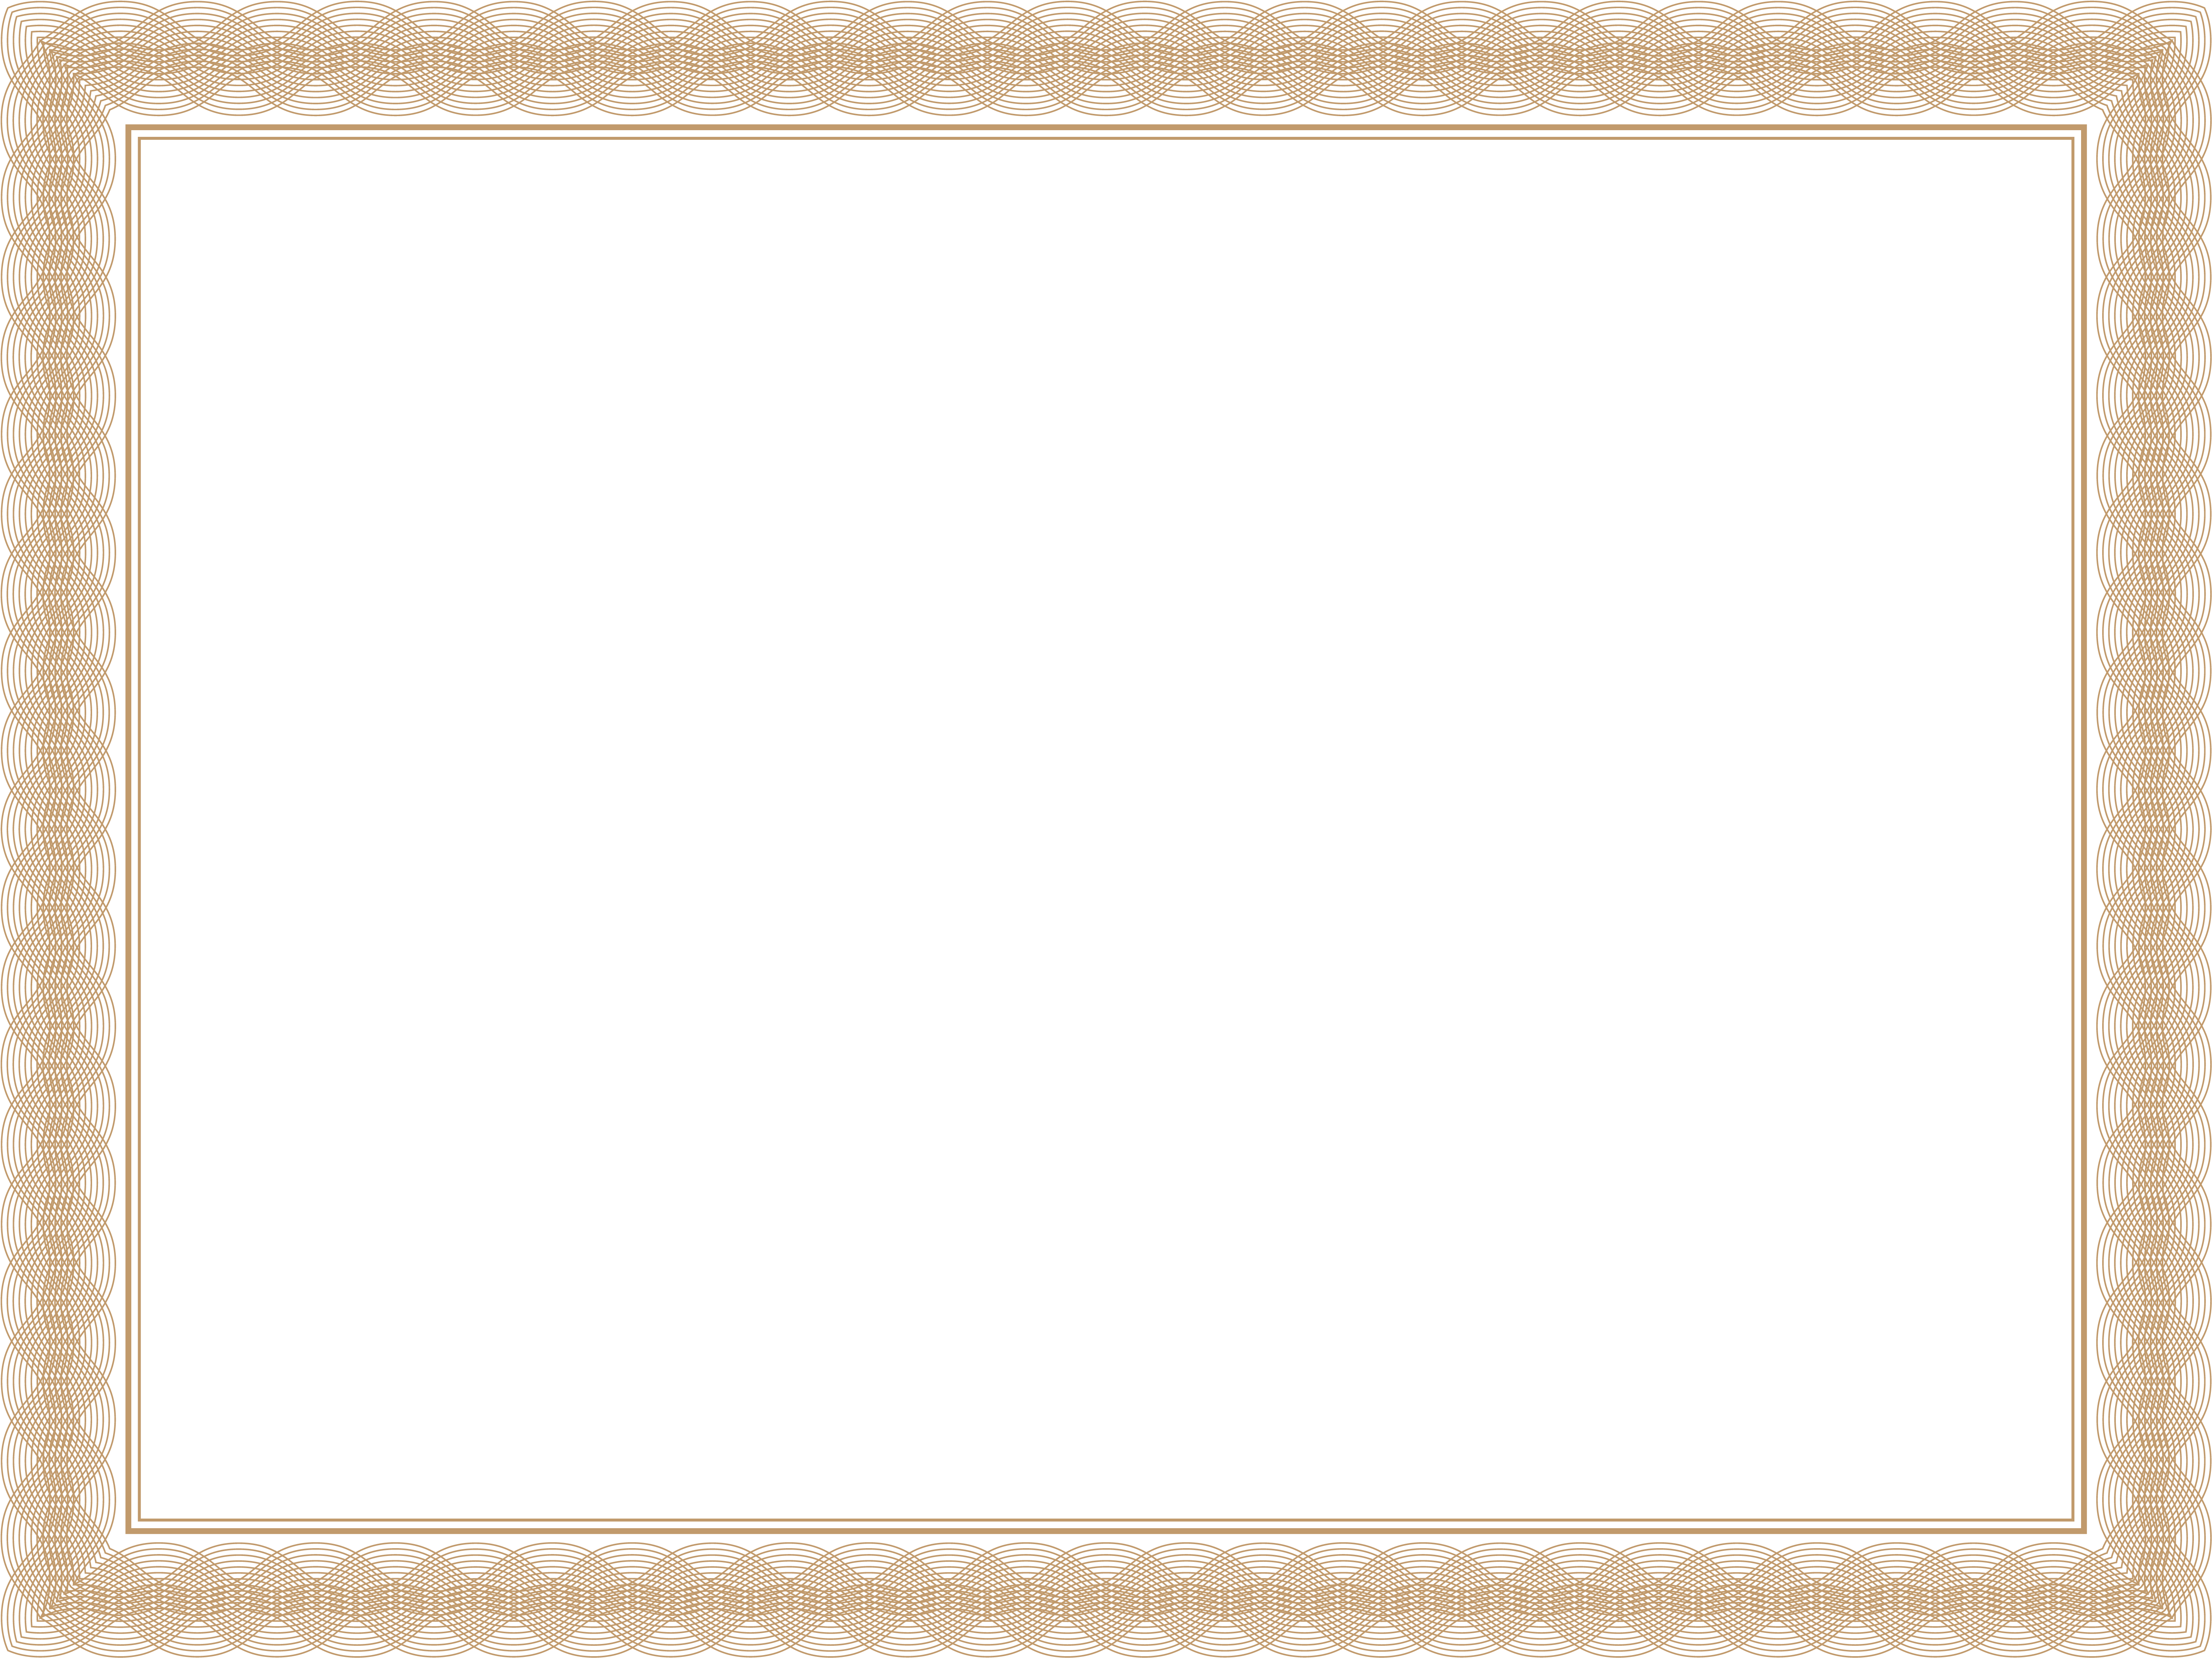 Certificate border design png. Download hd transparent image